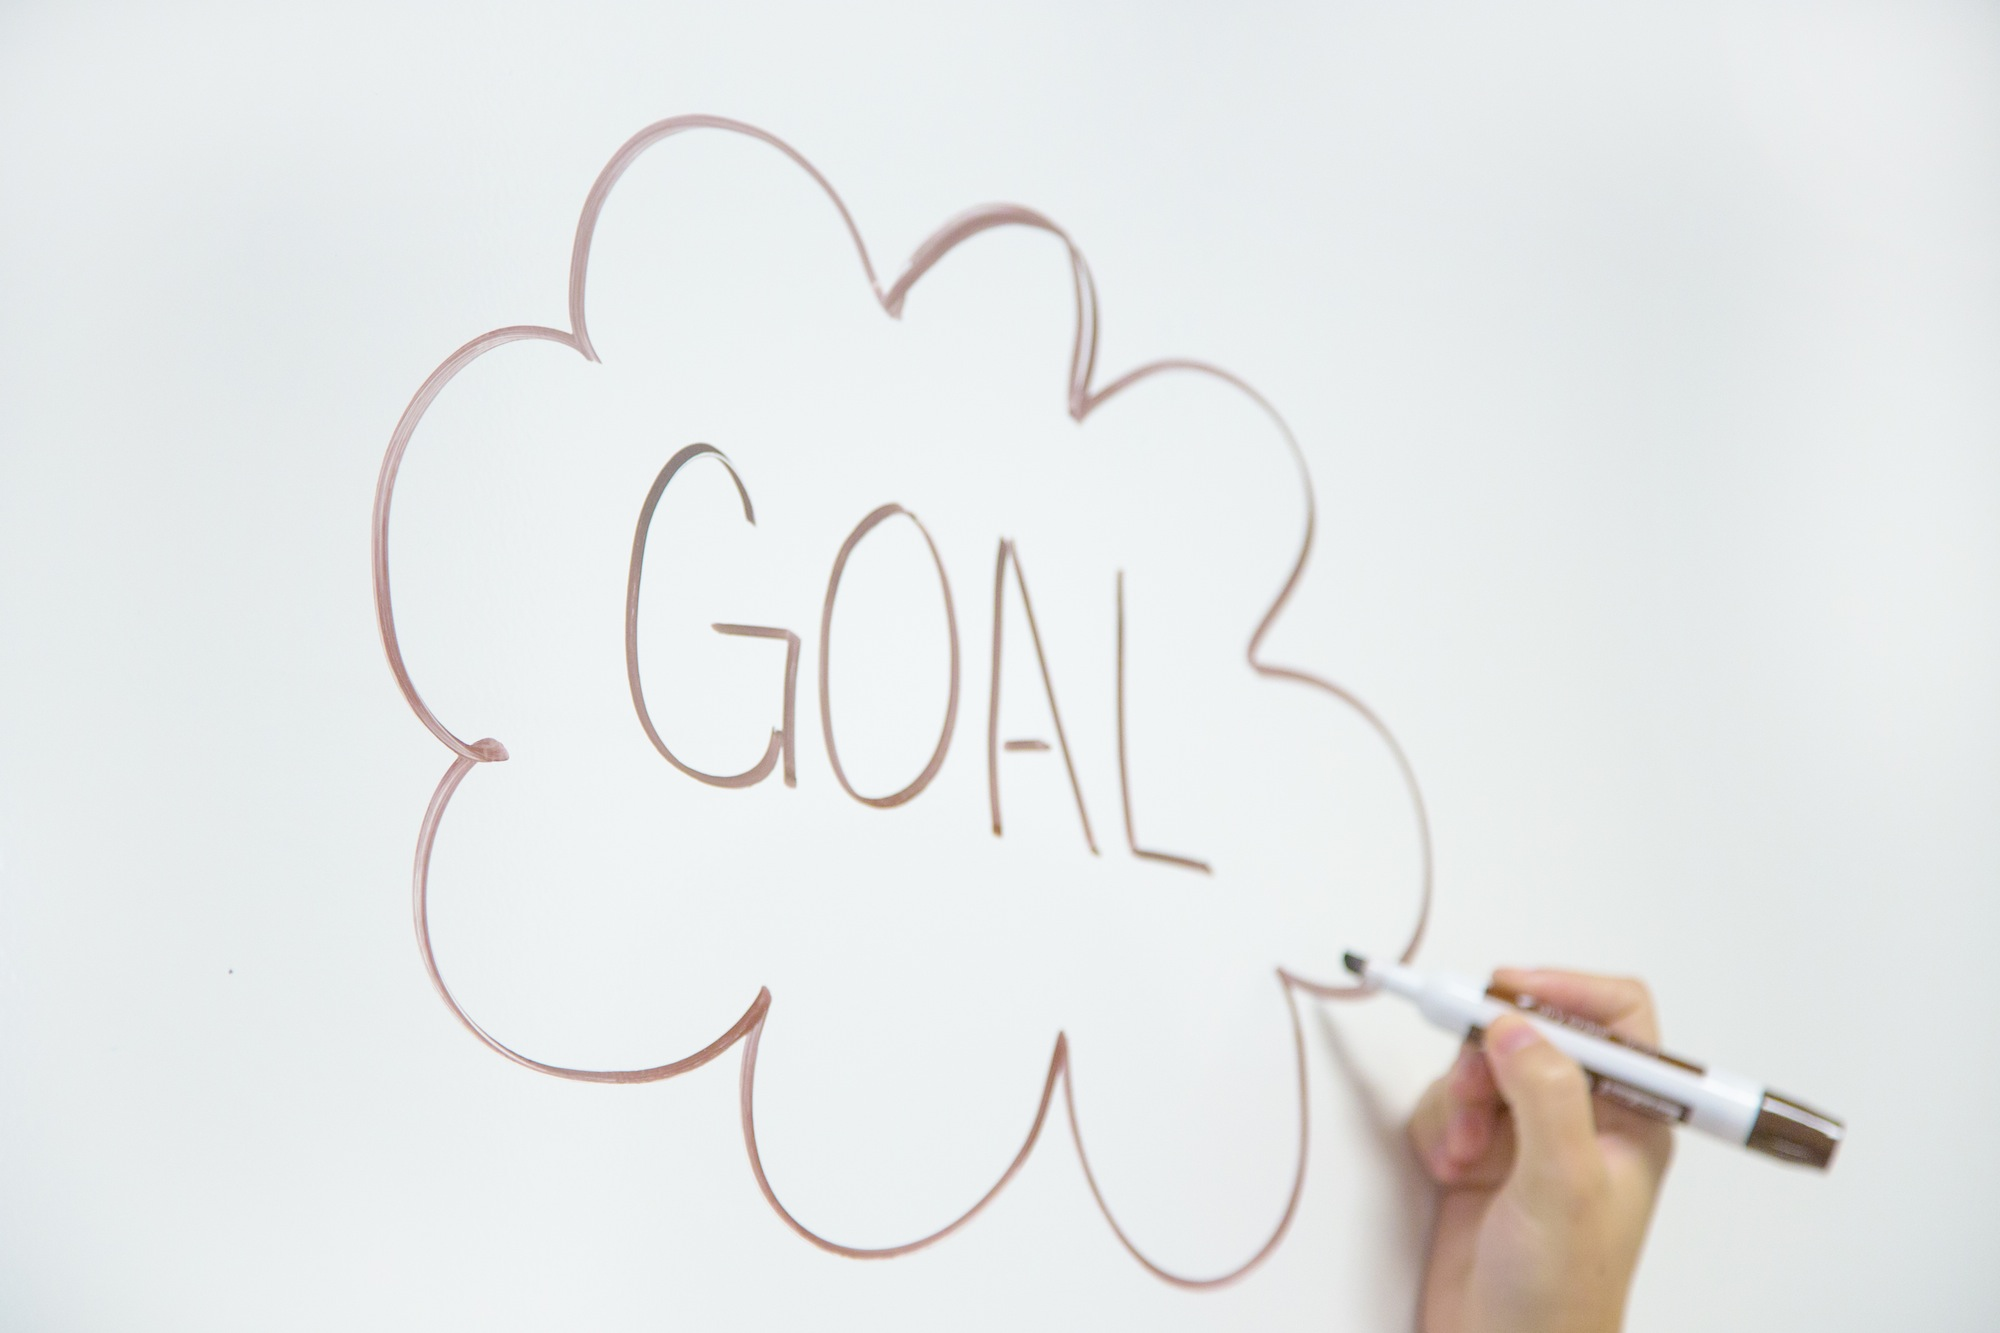 Your goals should range from small to large